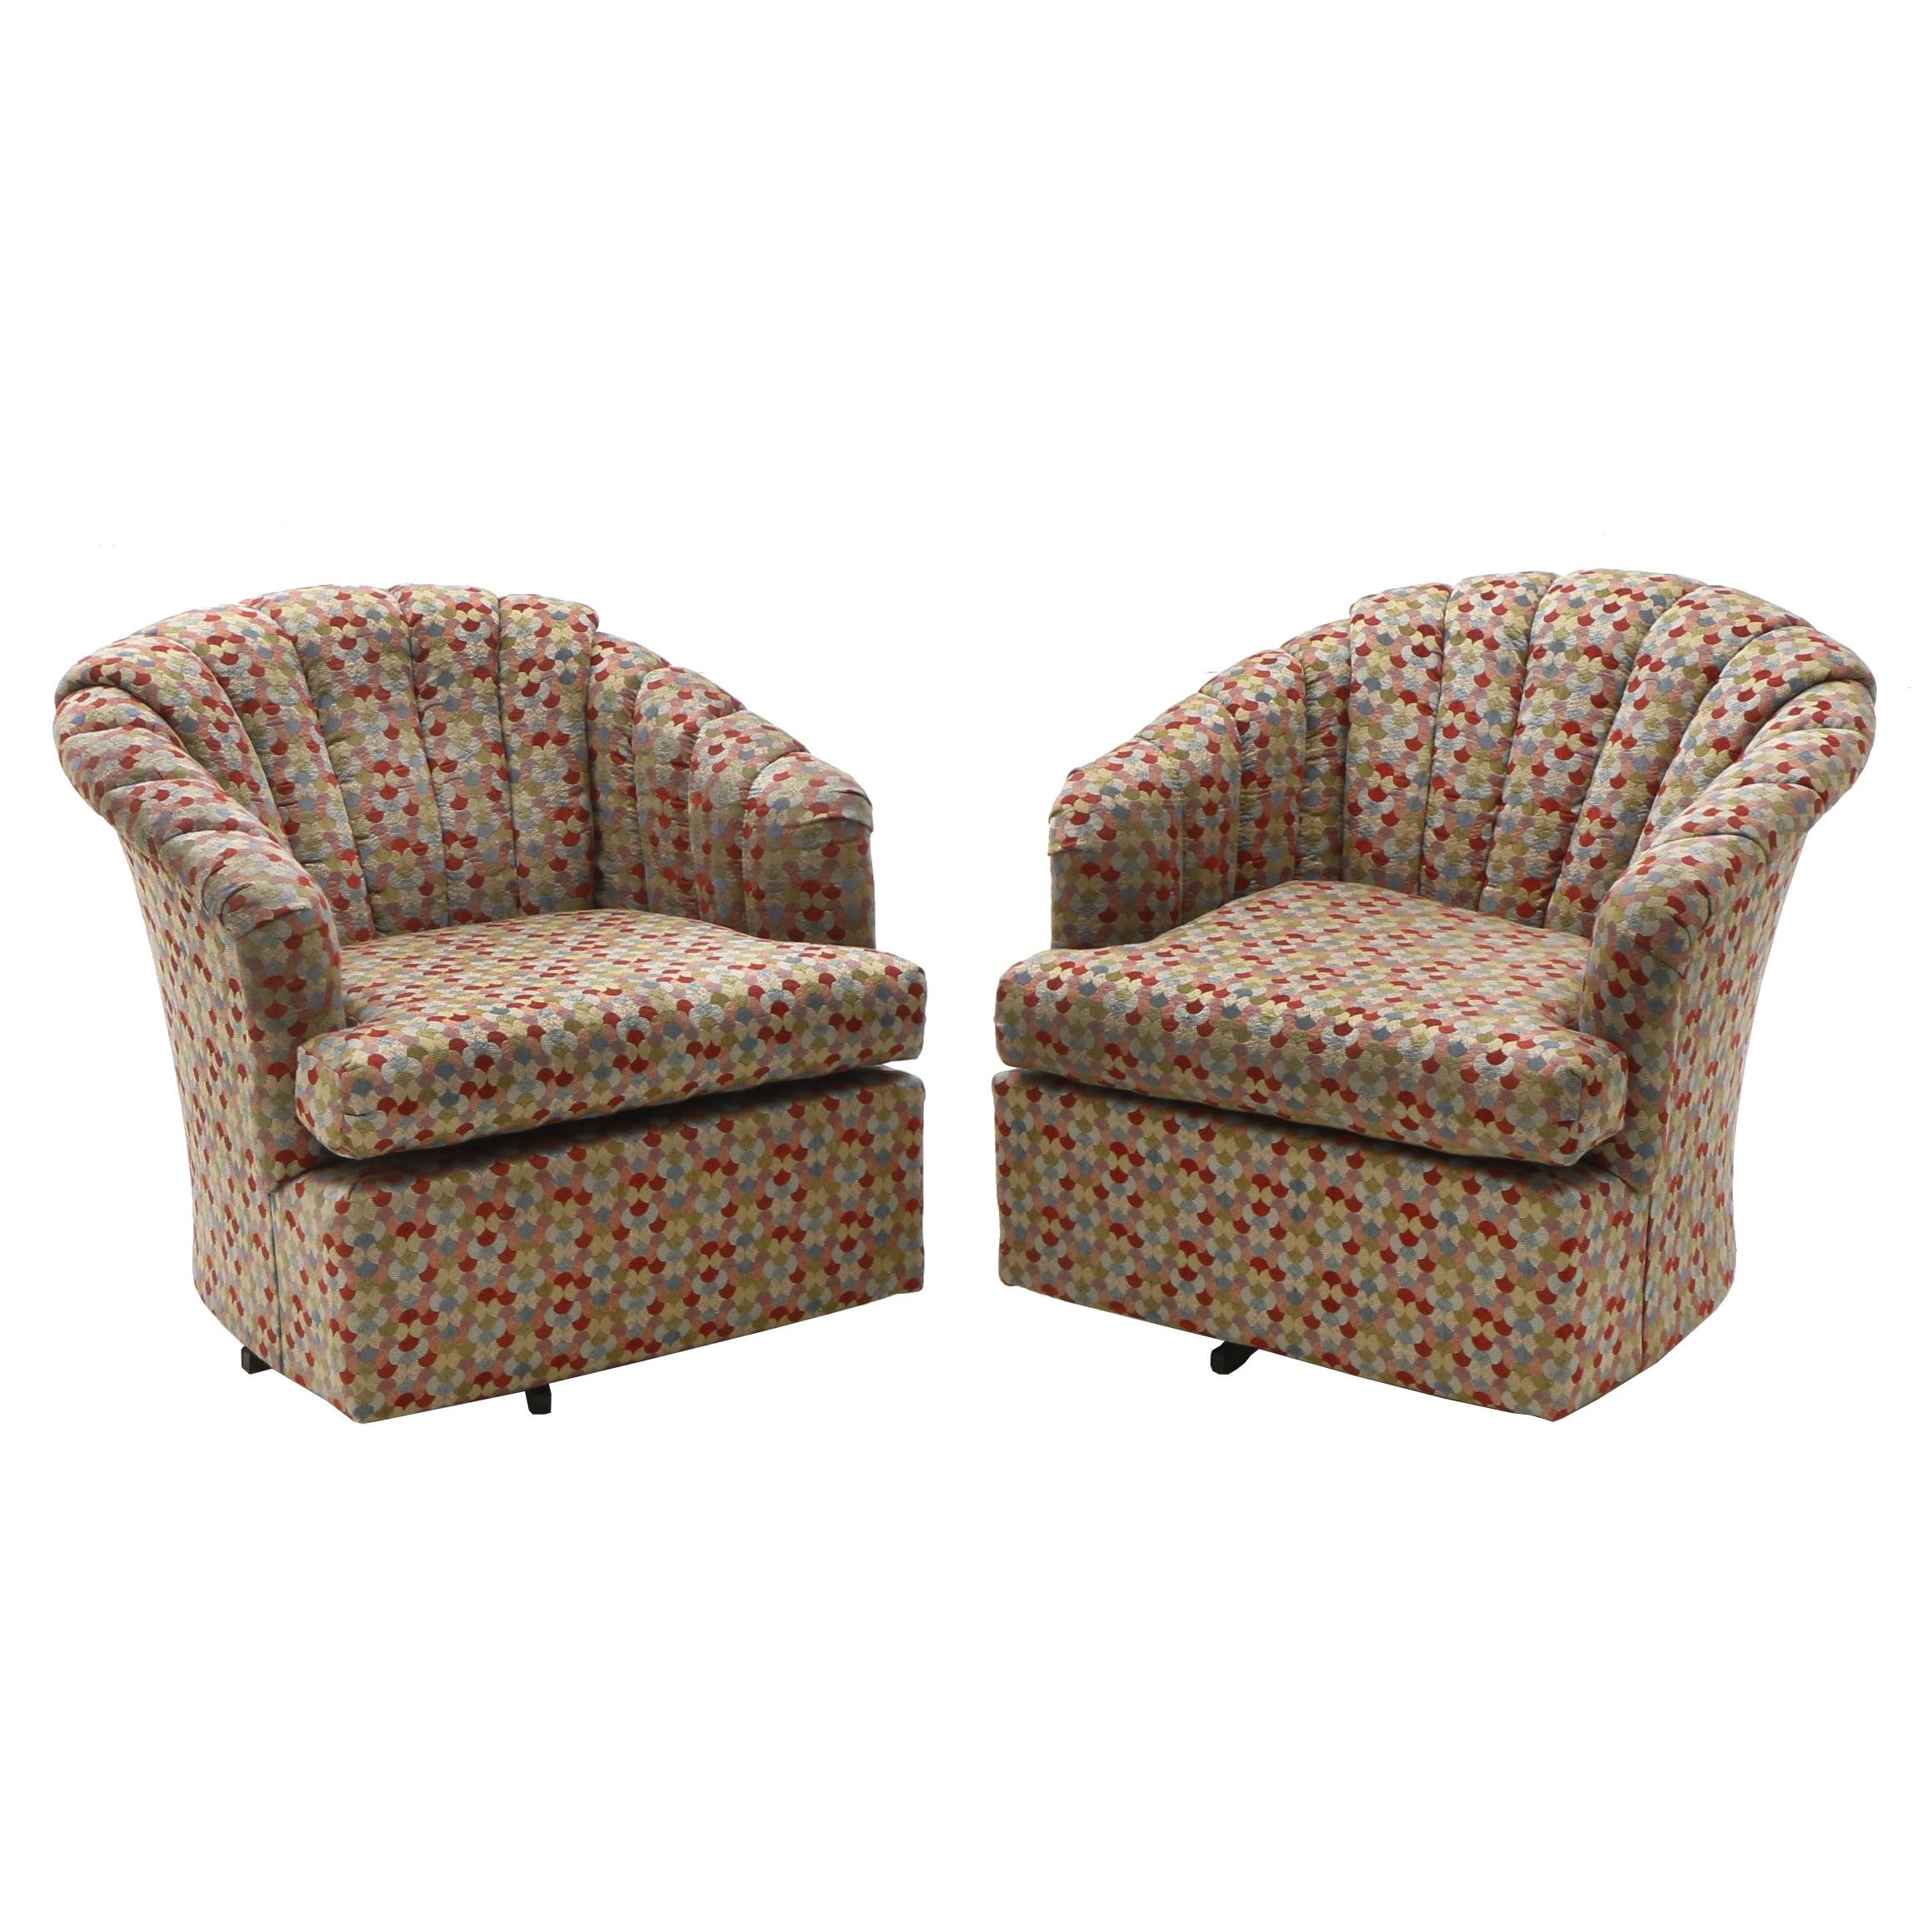 Best Chairs Inc. Channel Tufted Club Chairs